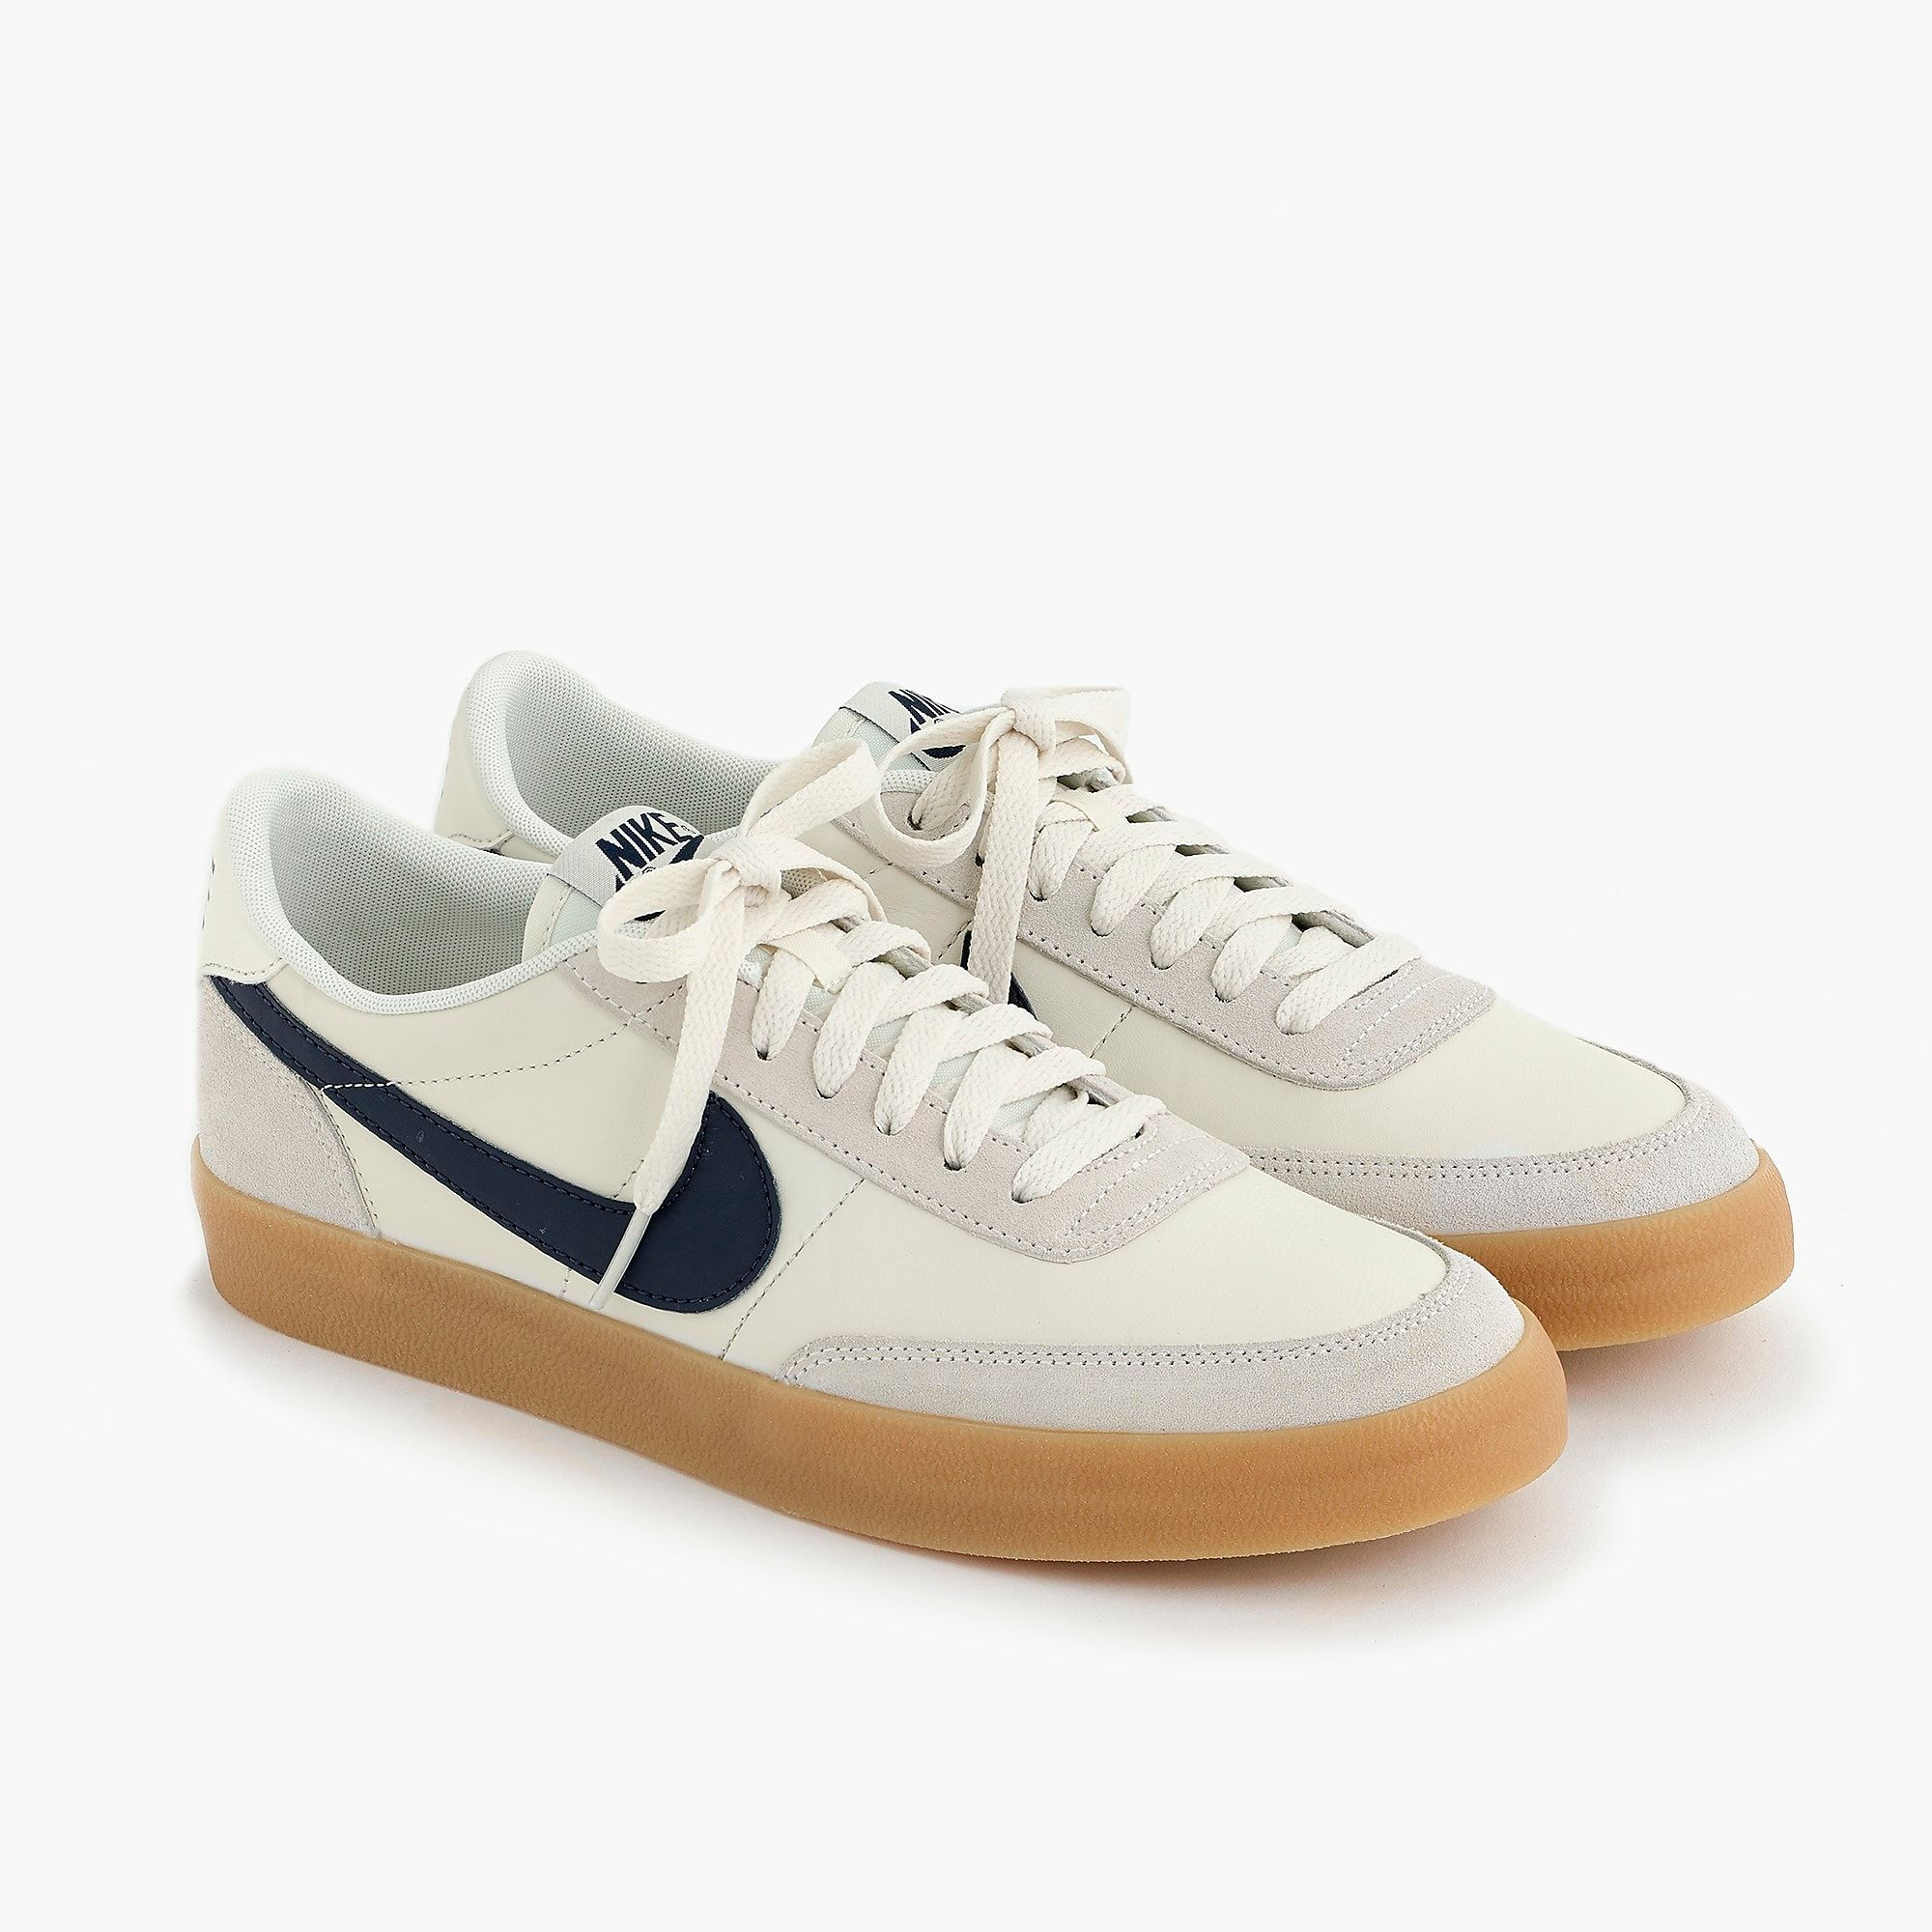 Shop the Nike for J.Crew Killshot 2 sneakers at J.Crew and